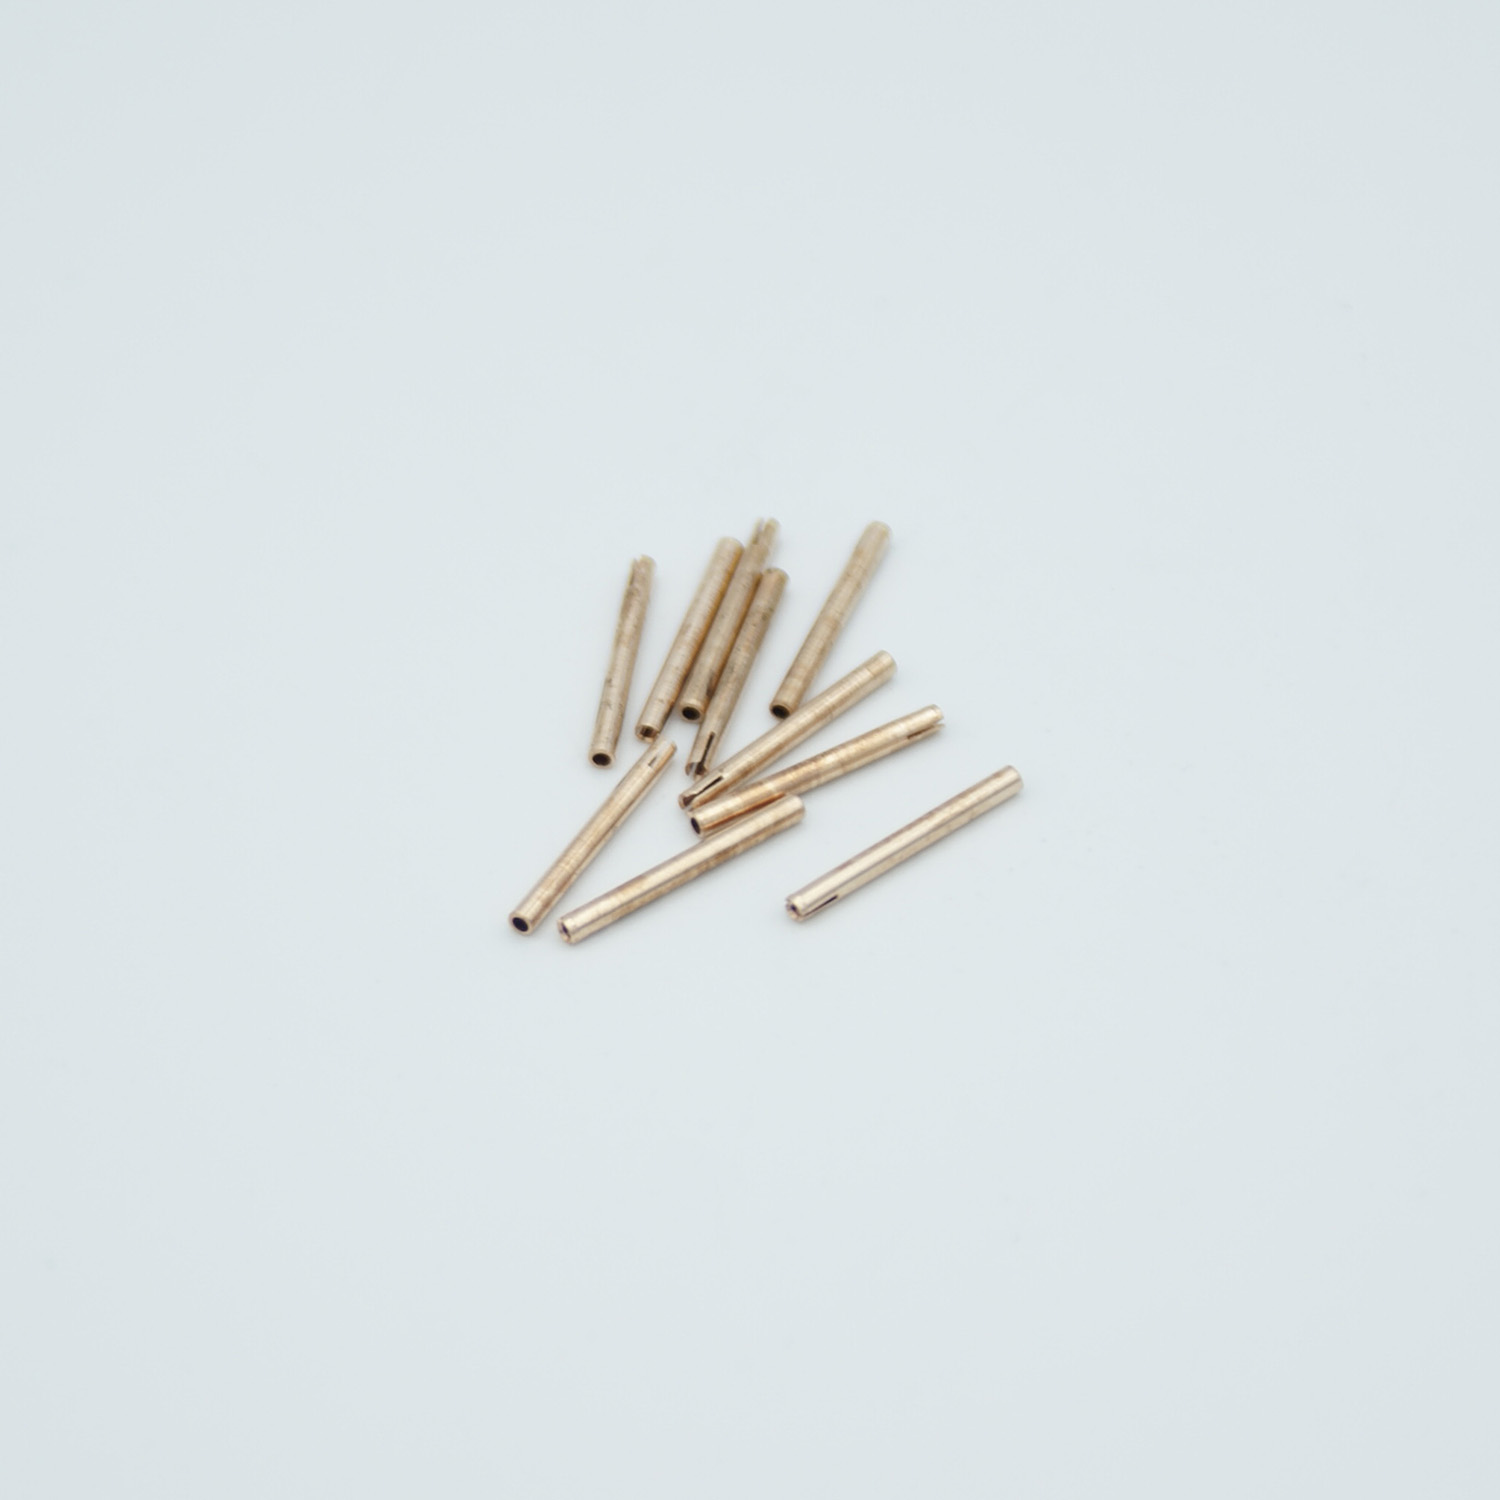 Power crimp type connectors for pin size 0,032